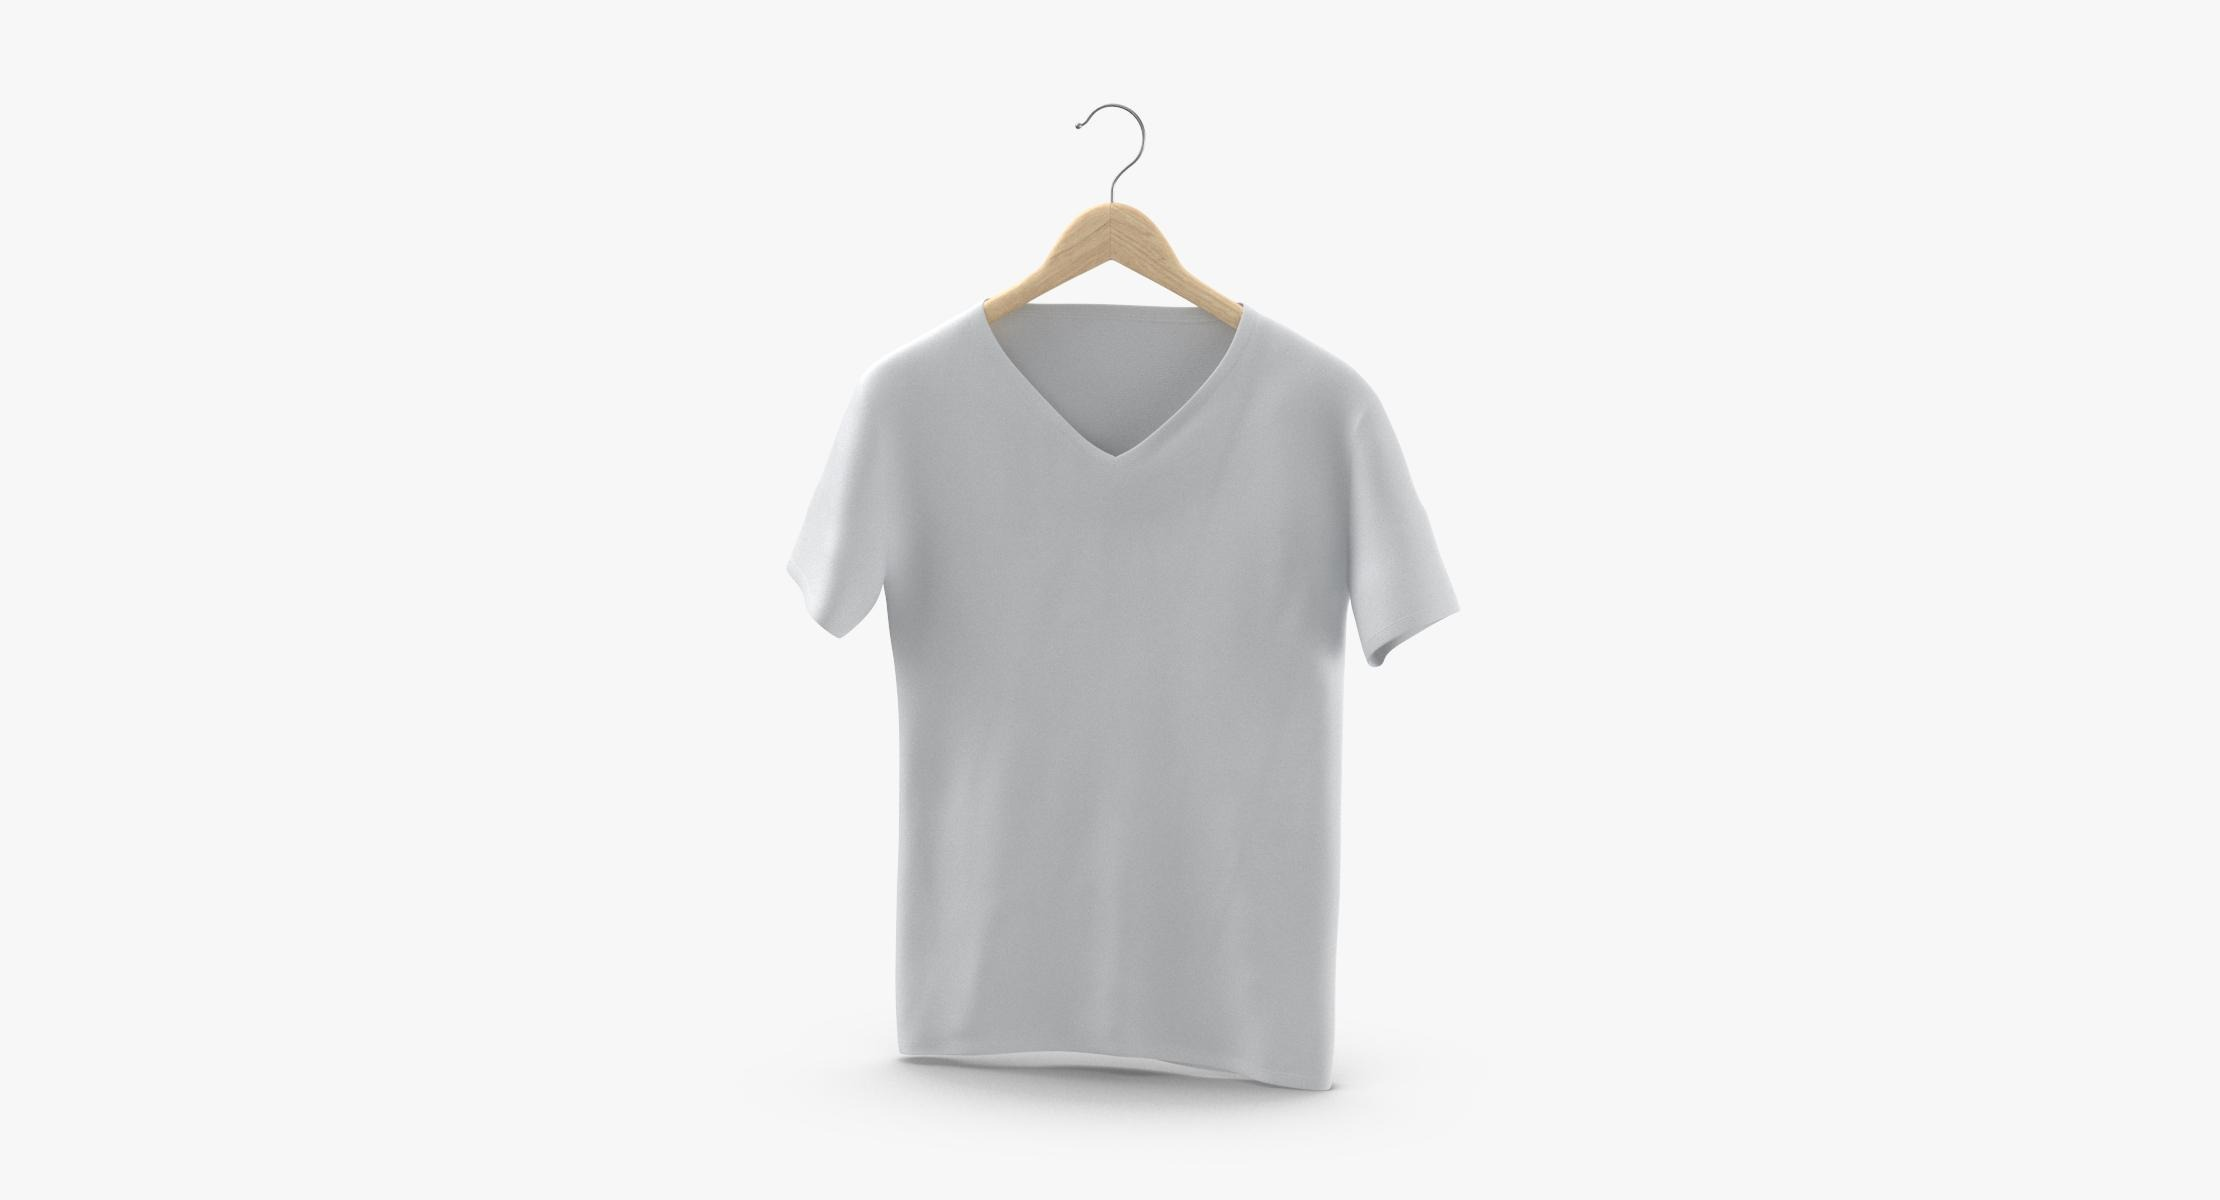 V-Neck Hanging On Hanger With Tag - reel 1